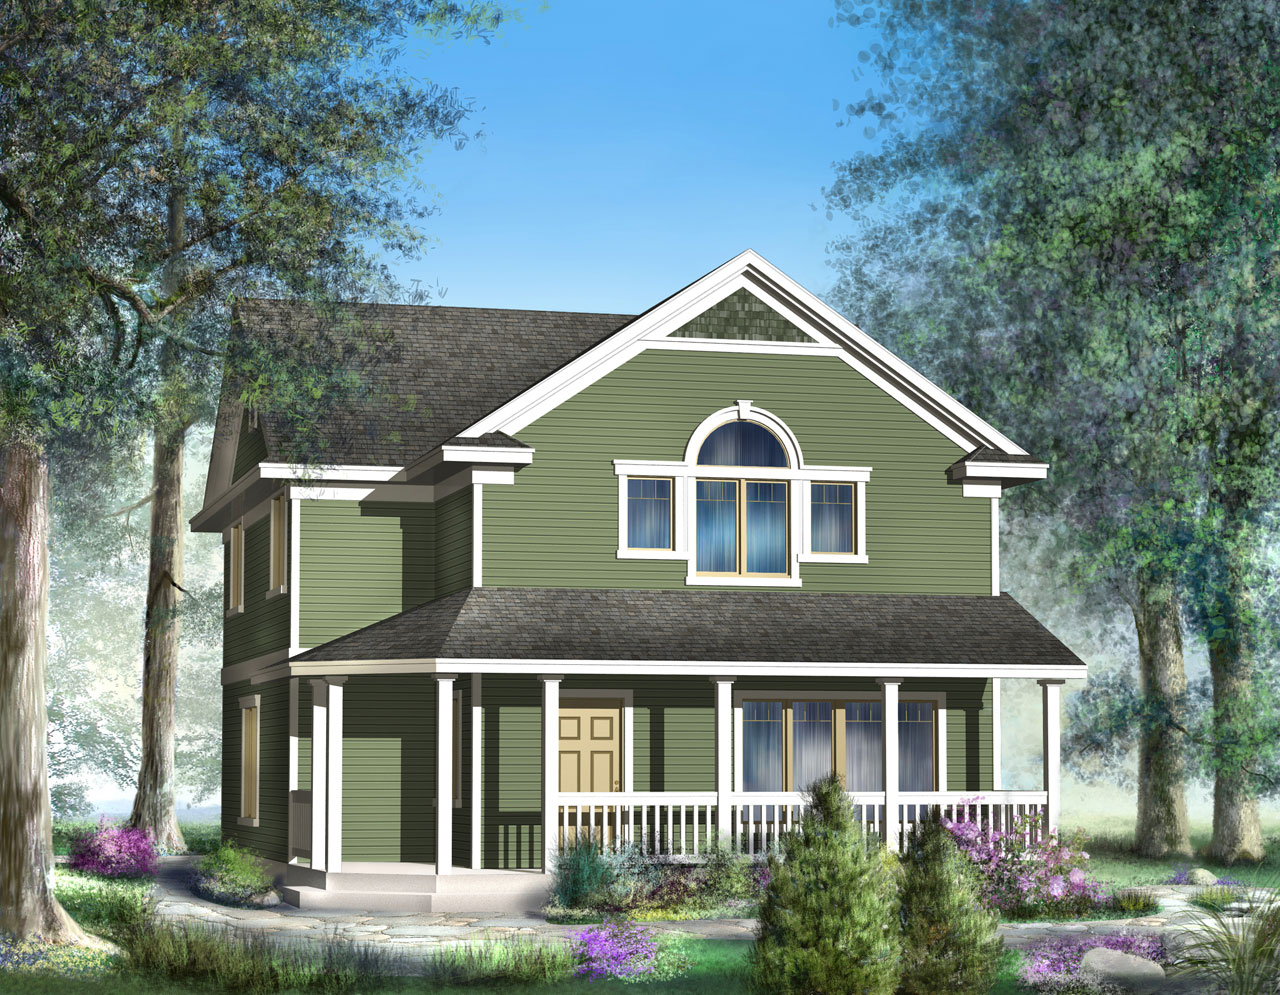 Craftsman Style House Plans Plan: 1-279